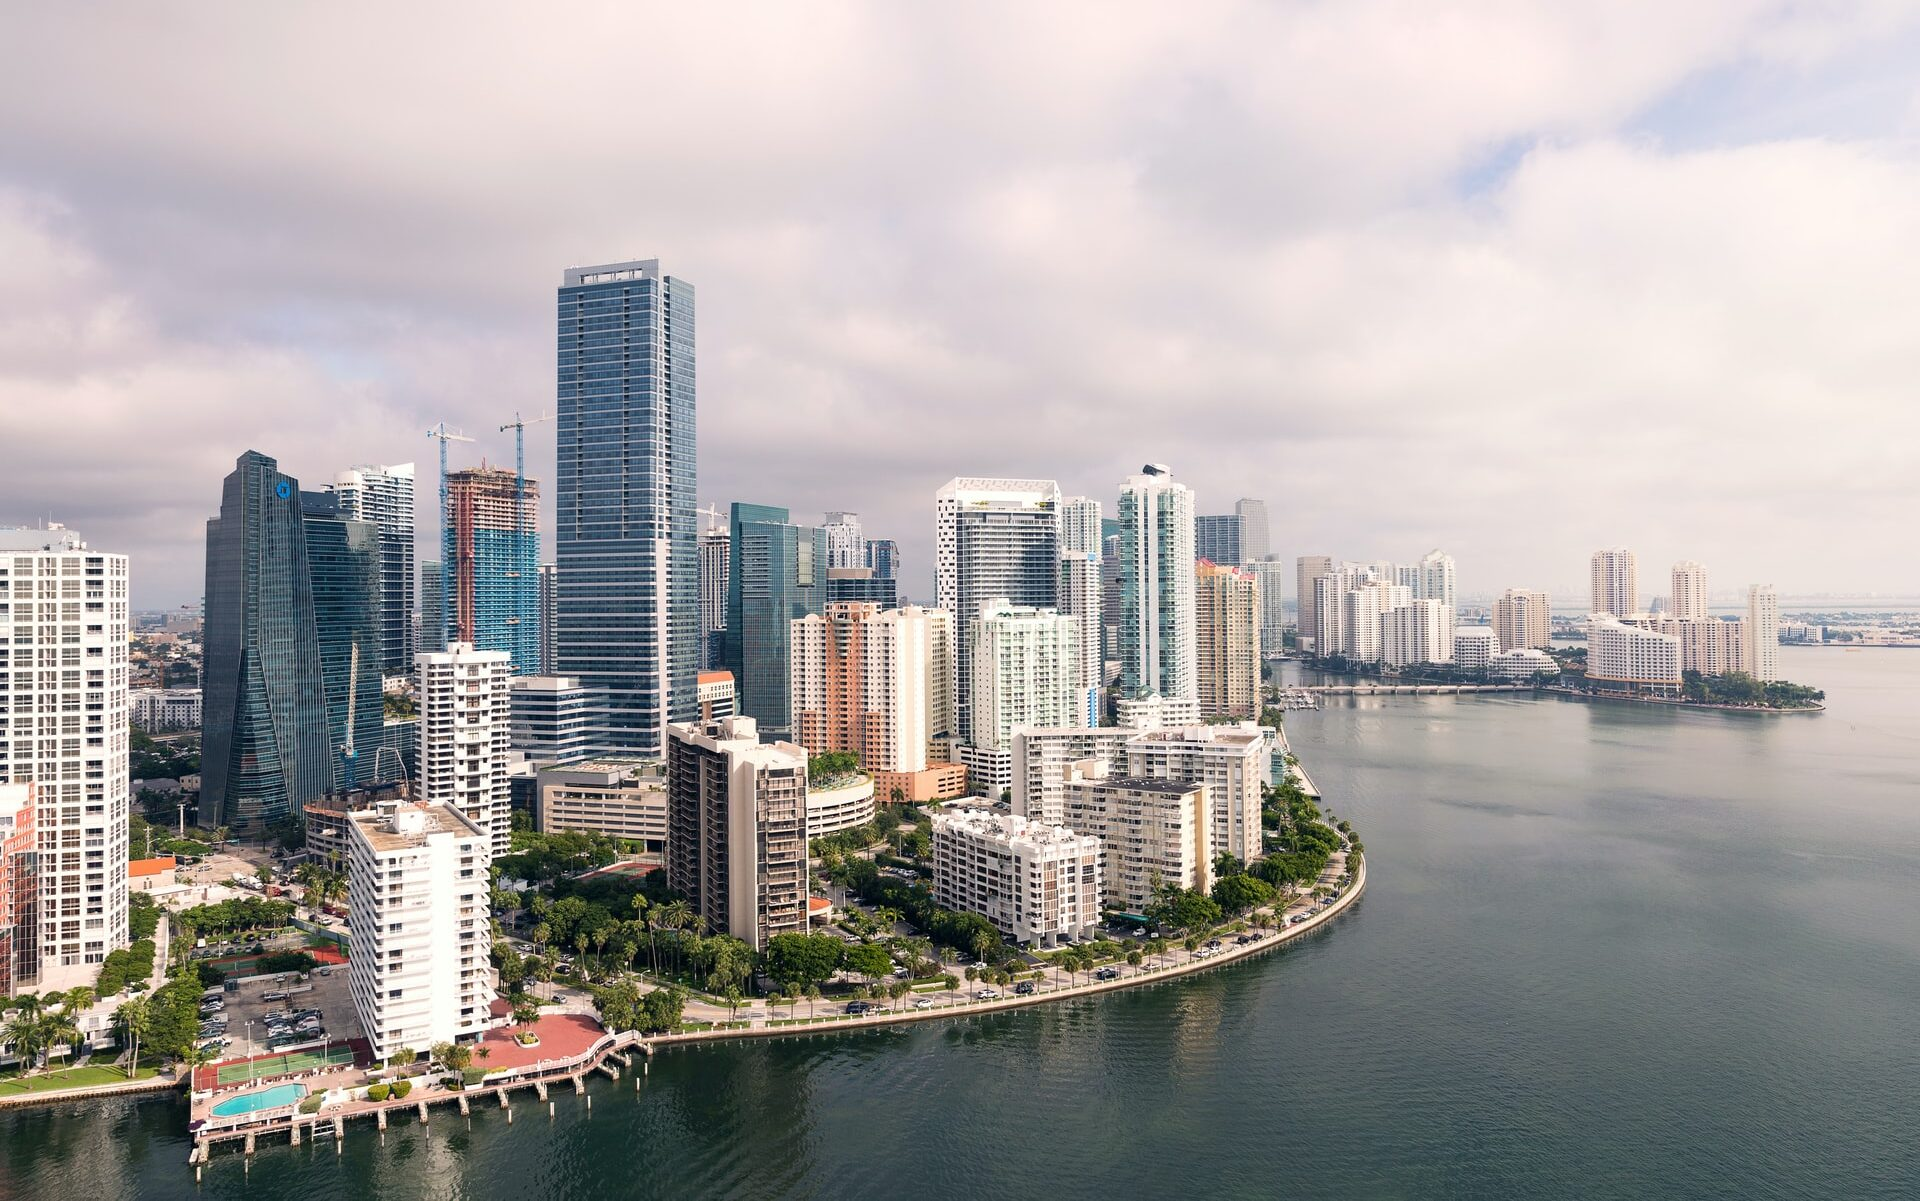 An aerial shot of Miami